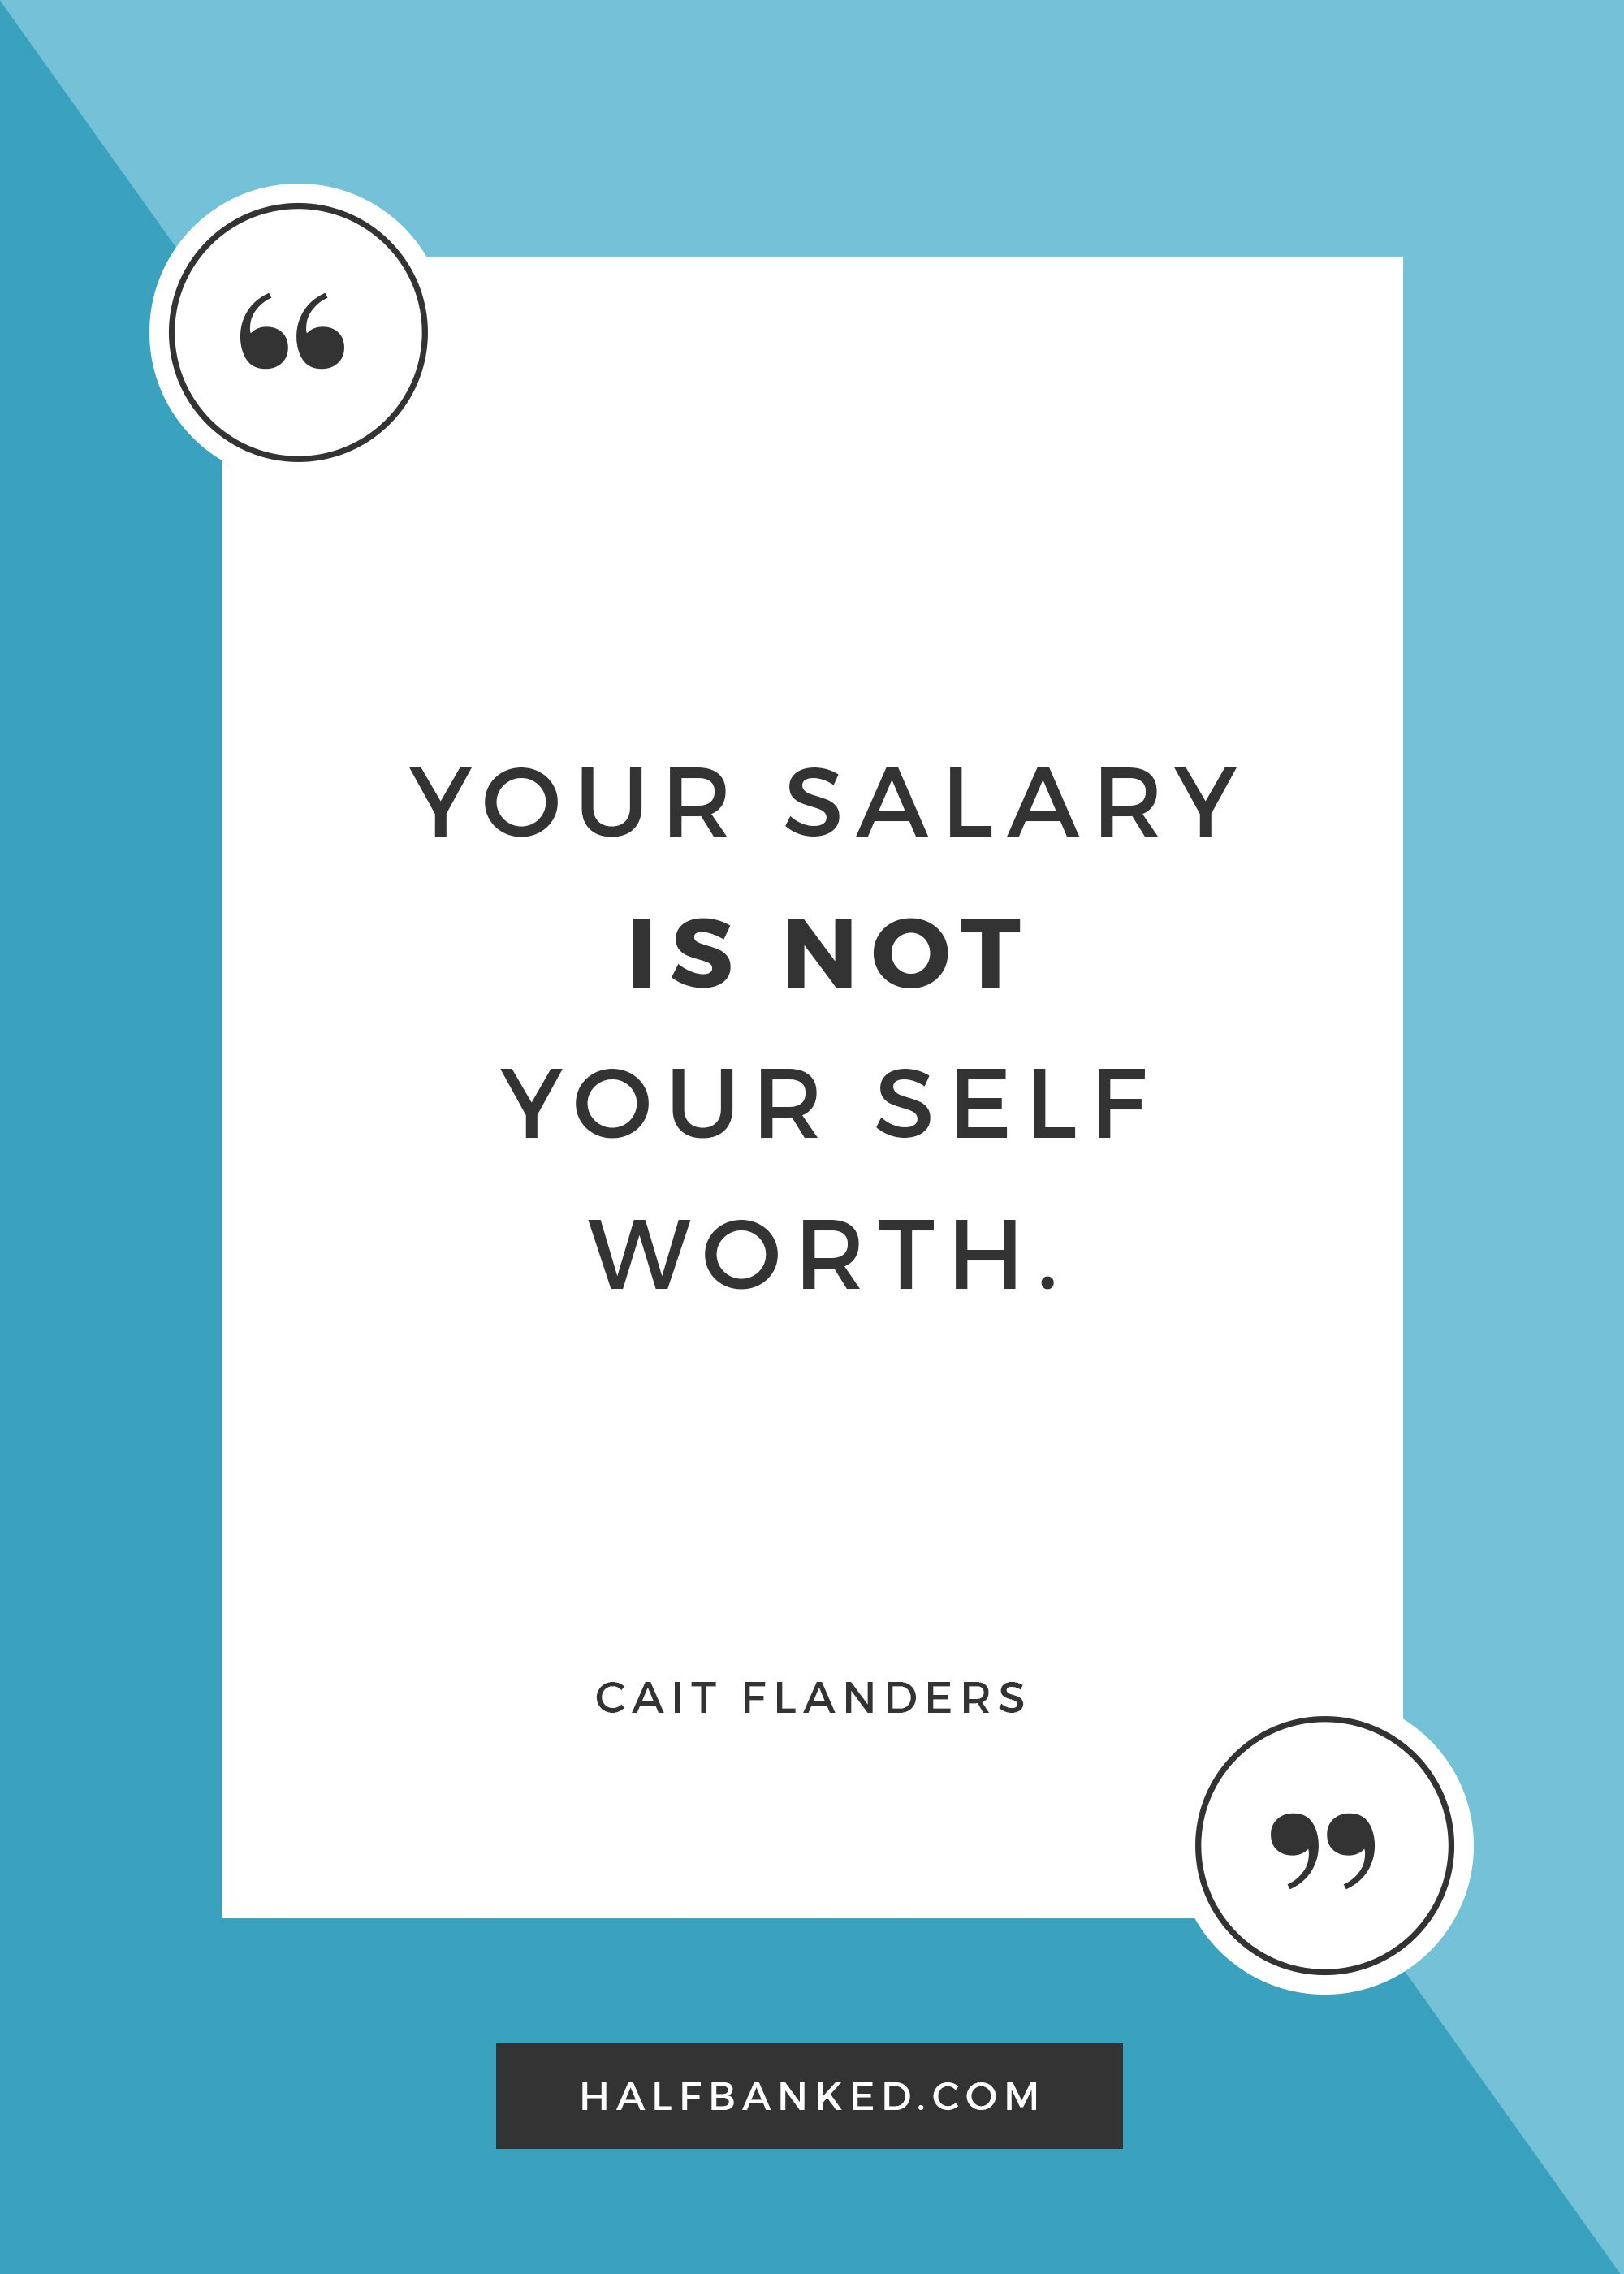 """Your salary is not your self worth."" -Cait Flanders"